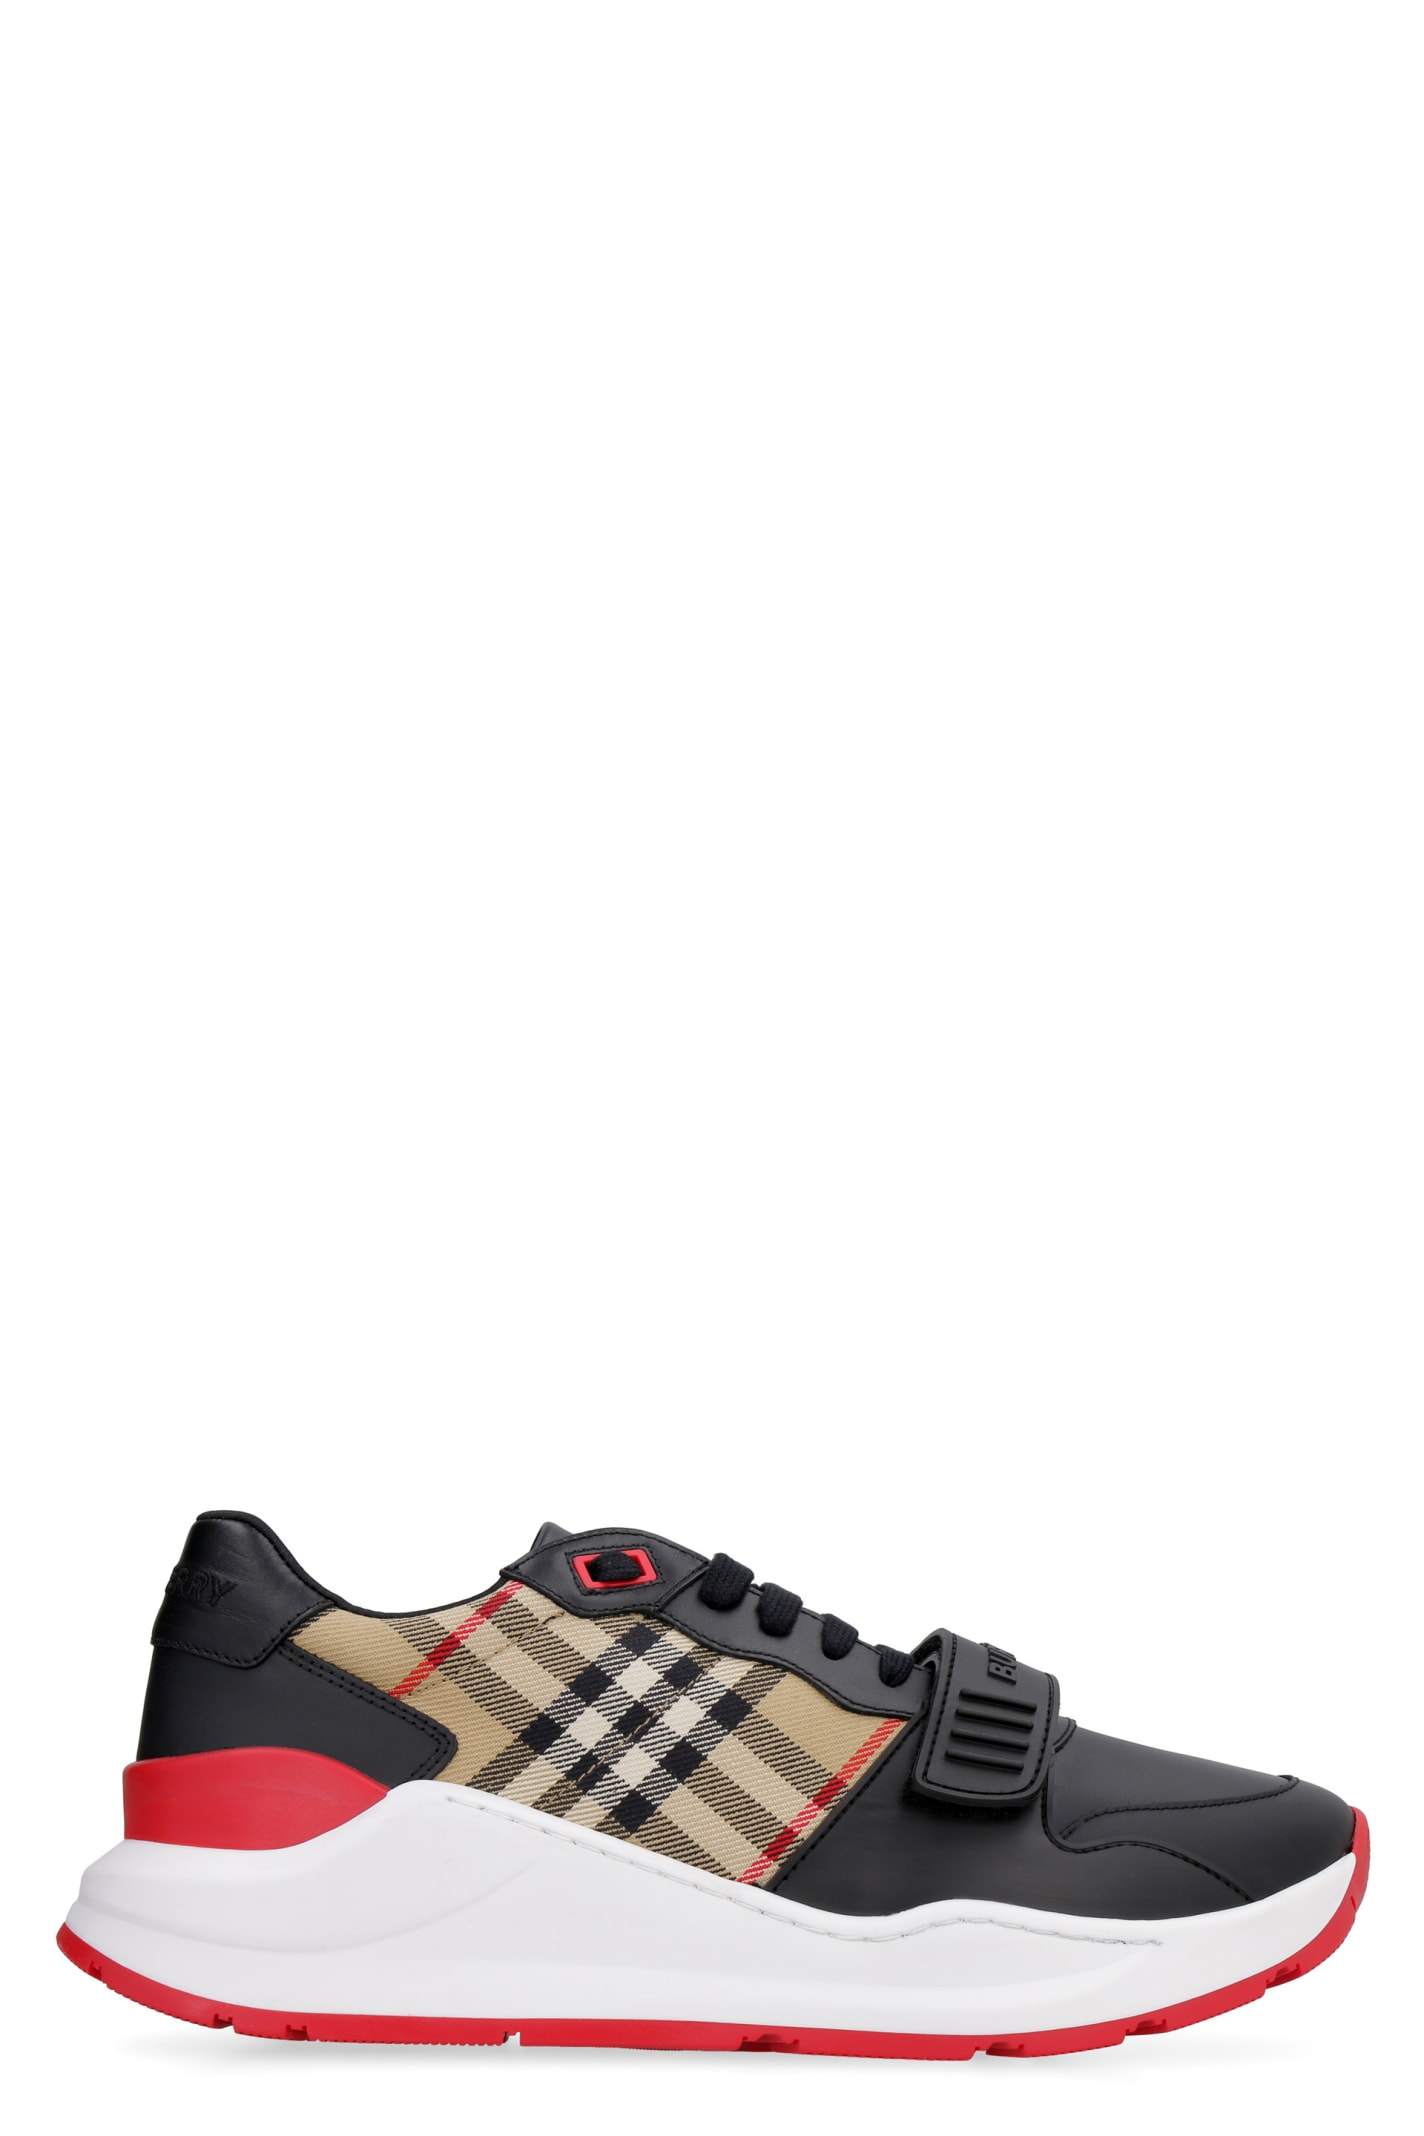 Burberry Vintage-check Print Detail Sneakers